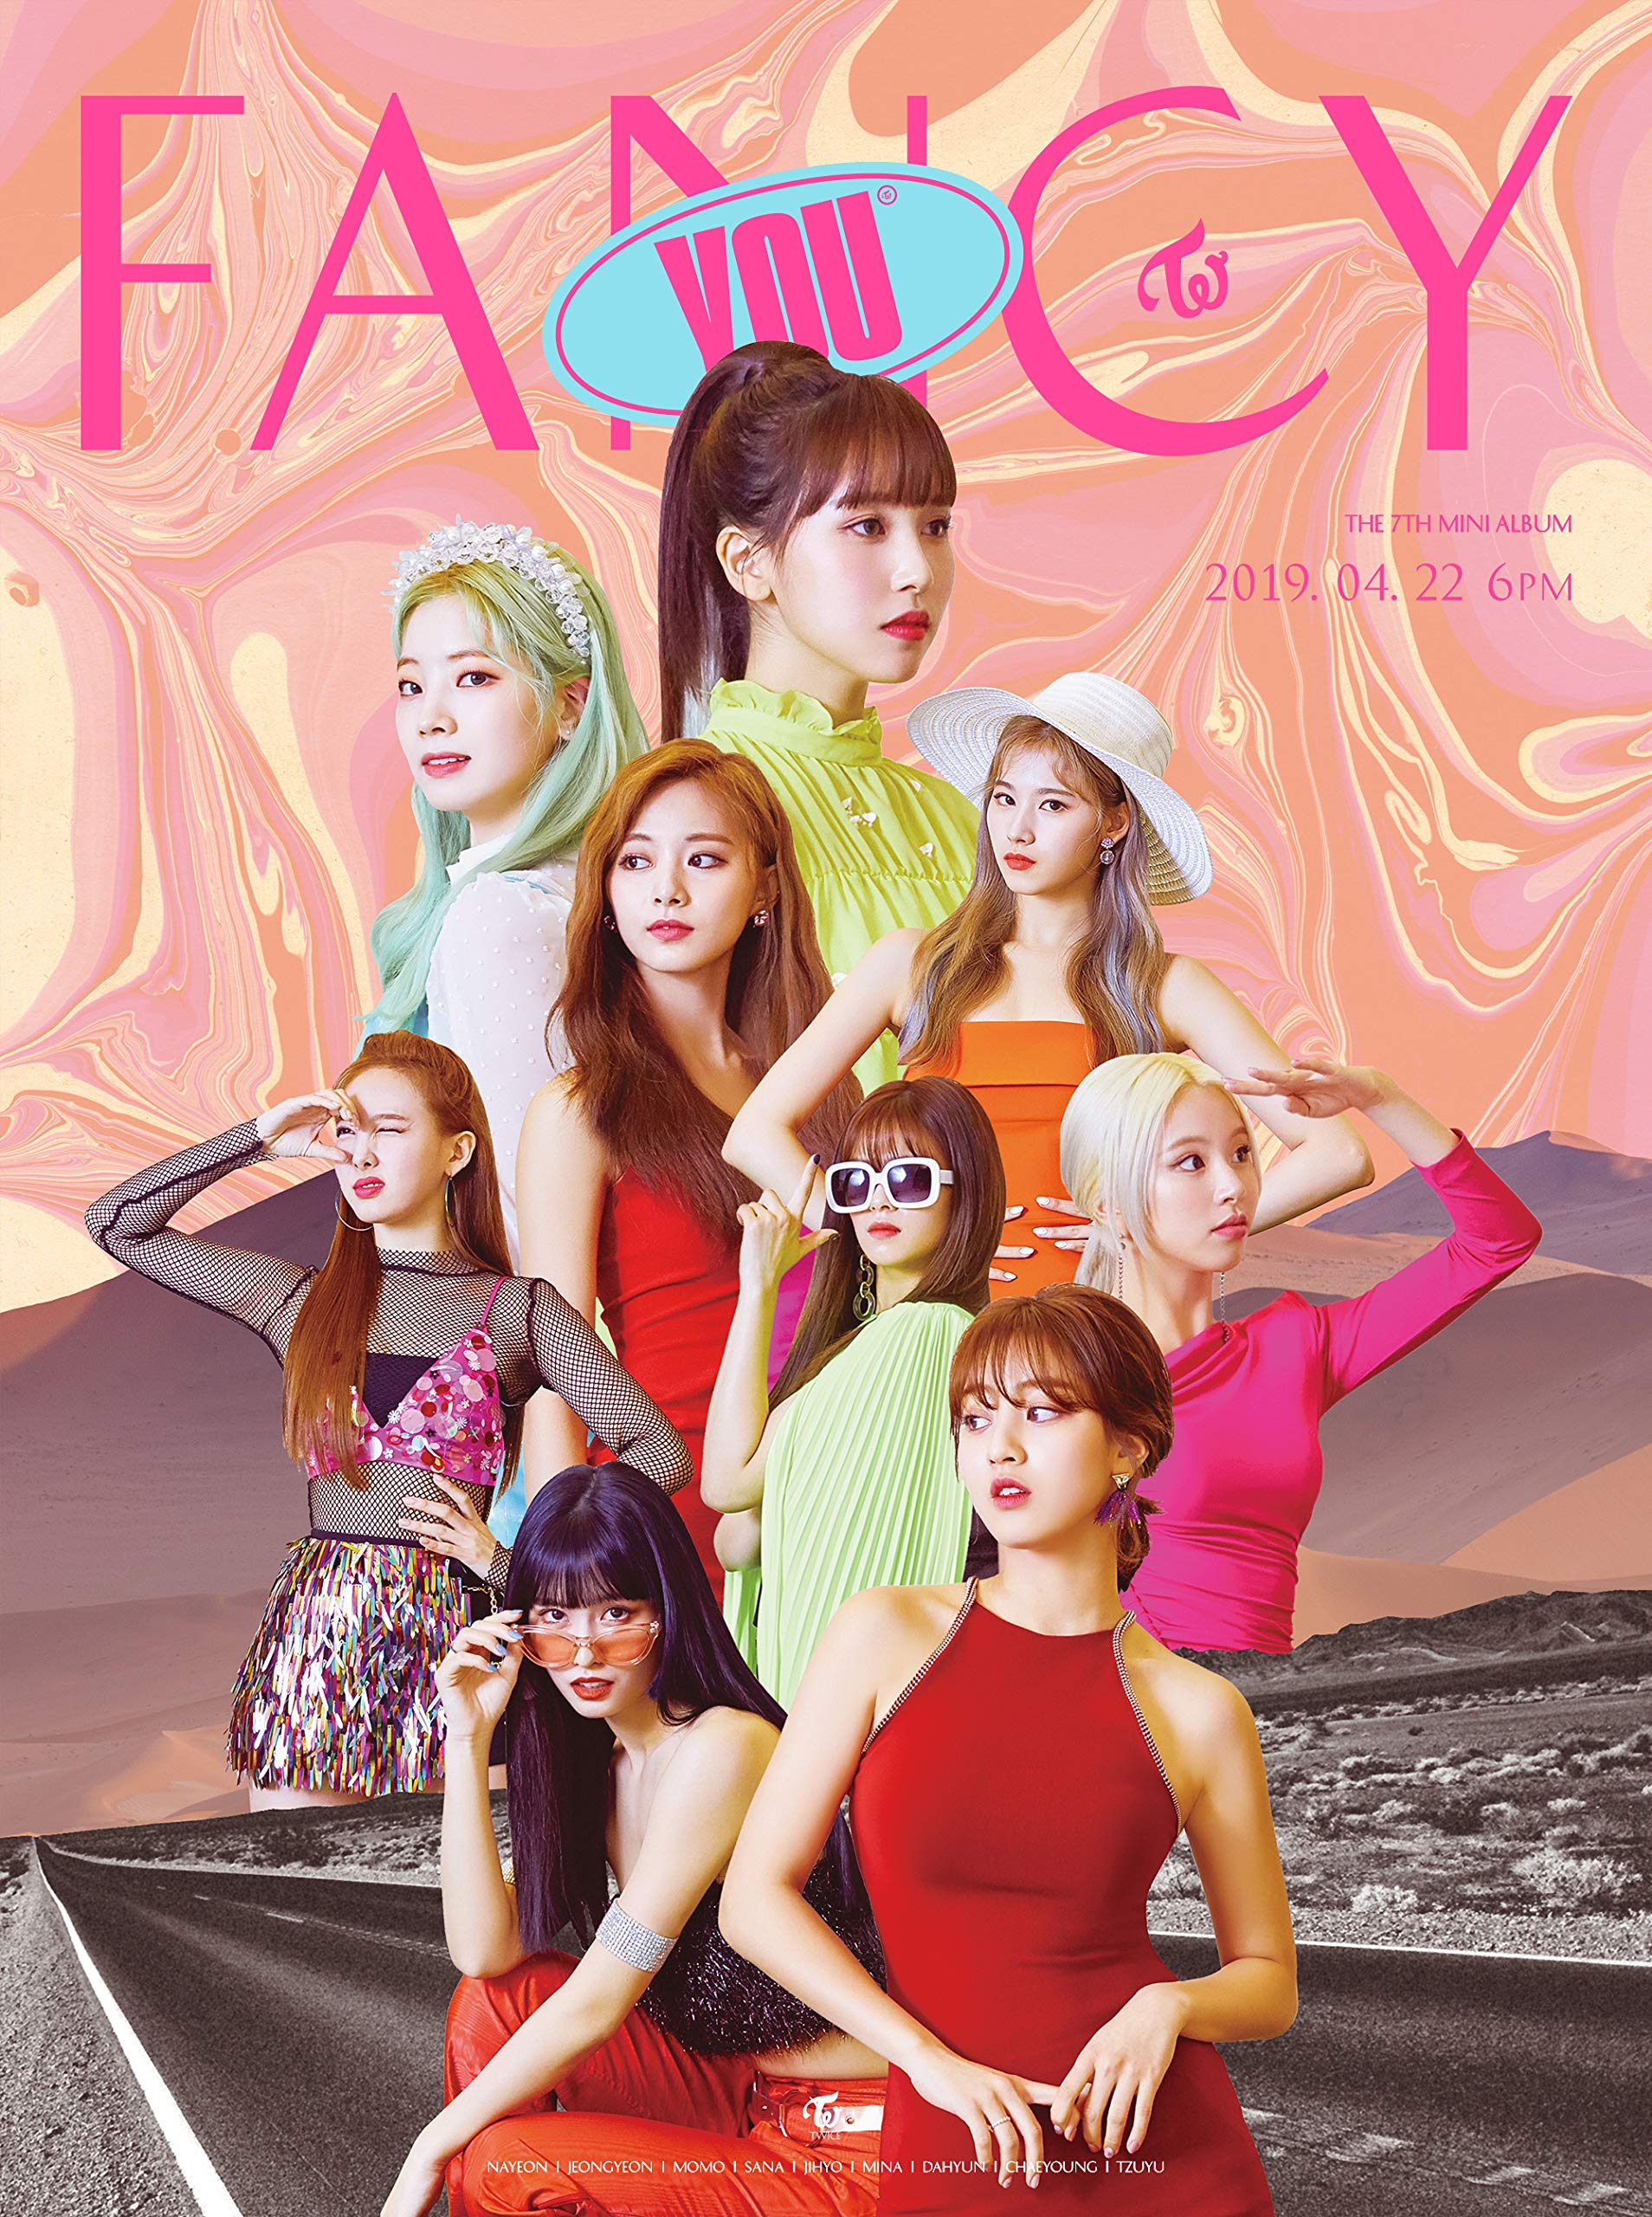 Twice The 7th Mini Album 'Fancy You' [A+B+C ver. Set] - Pack of 3CD, 3Photobook, Photocards, 3Folded Posters with Pre Order Benefit, Extra Decorative Sticker Set, Photocard Set by Twice